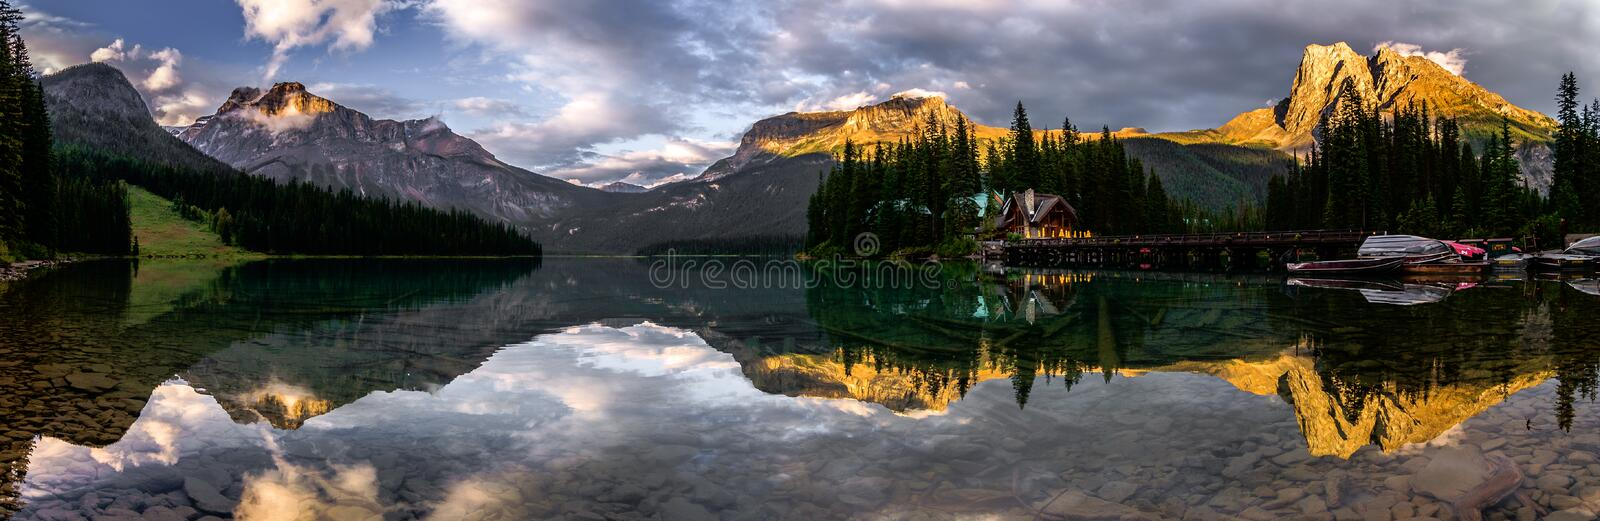 Emerald Lake Panorama Reflection lizenzfreie stockfotos